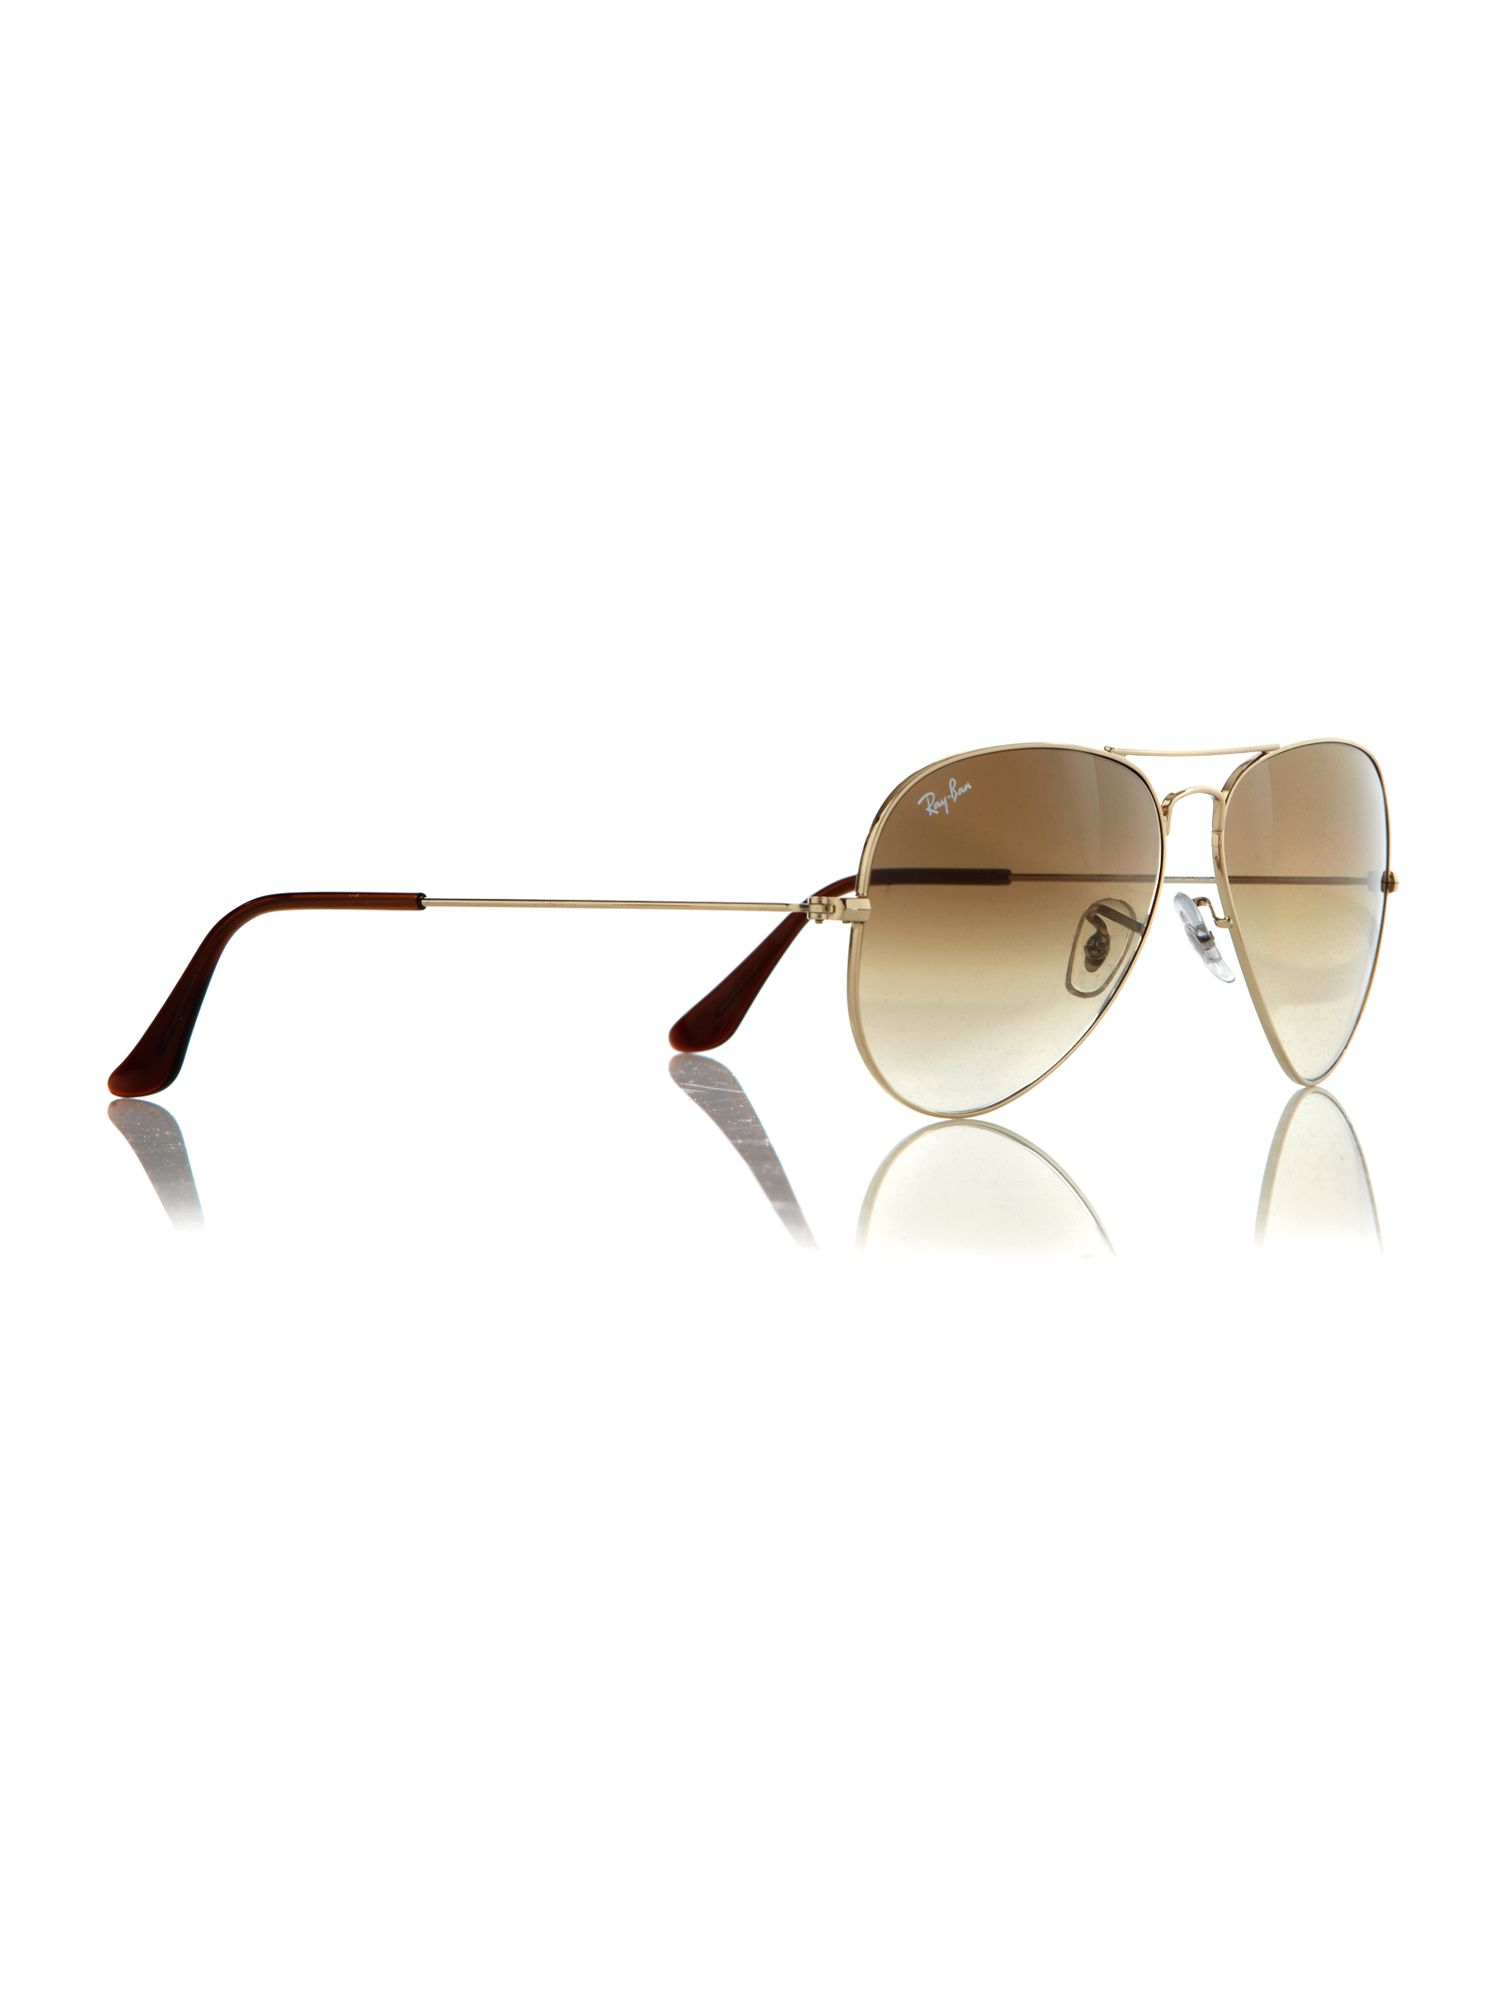 Unisex RB3025 001/51 Arista Aviator Sunglasses